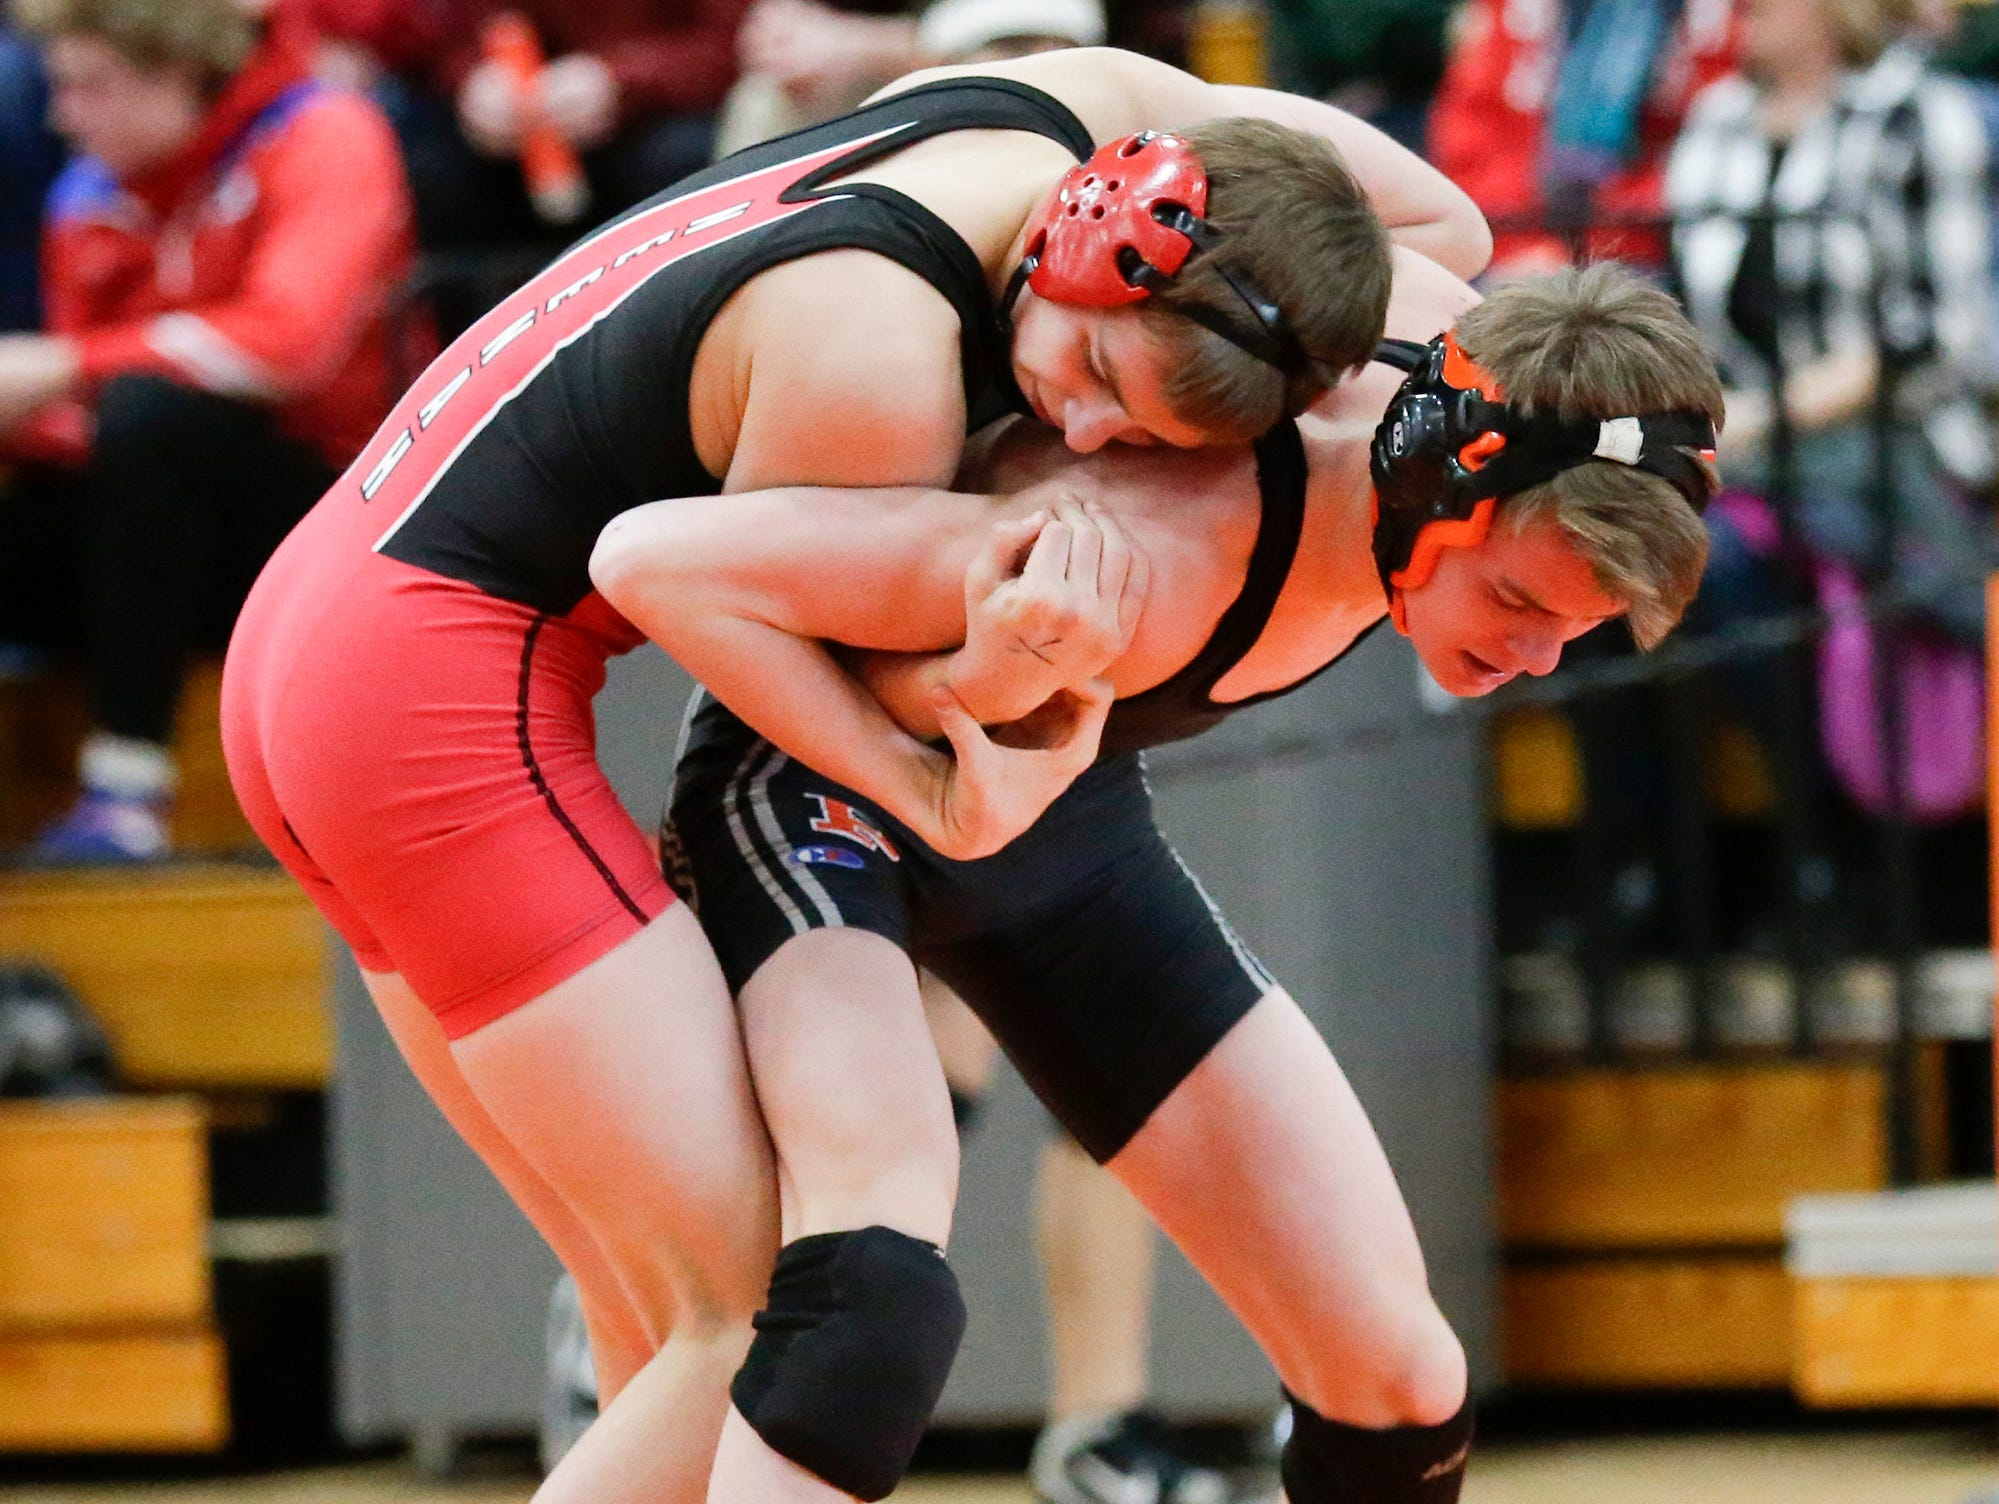 Drake Hayward of Neenah High School wrestles Andrew Steinhardt of Plymouth High School in the 126 pound weight class during the WIAA sectionals Saturday, February 16, 2019 in Hartford, Wis. Hayward won with a pin. Doug Raflik/USA TODAY NETWORK-Wisconsin